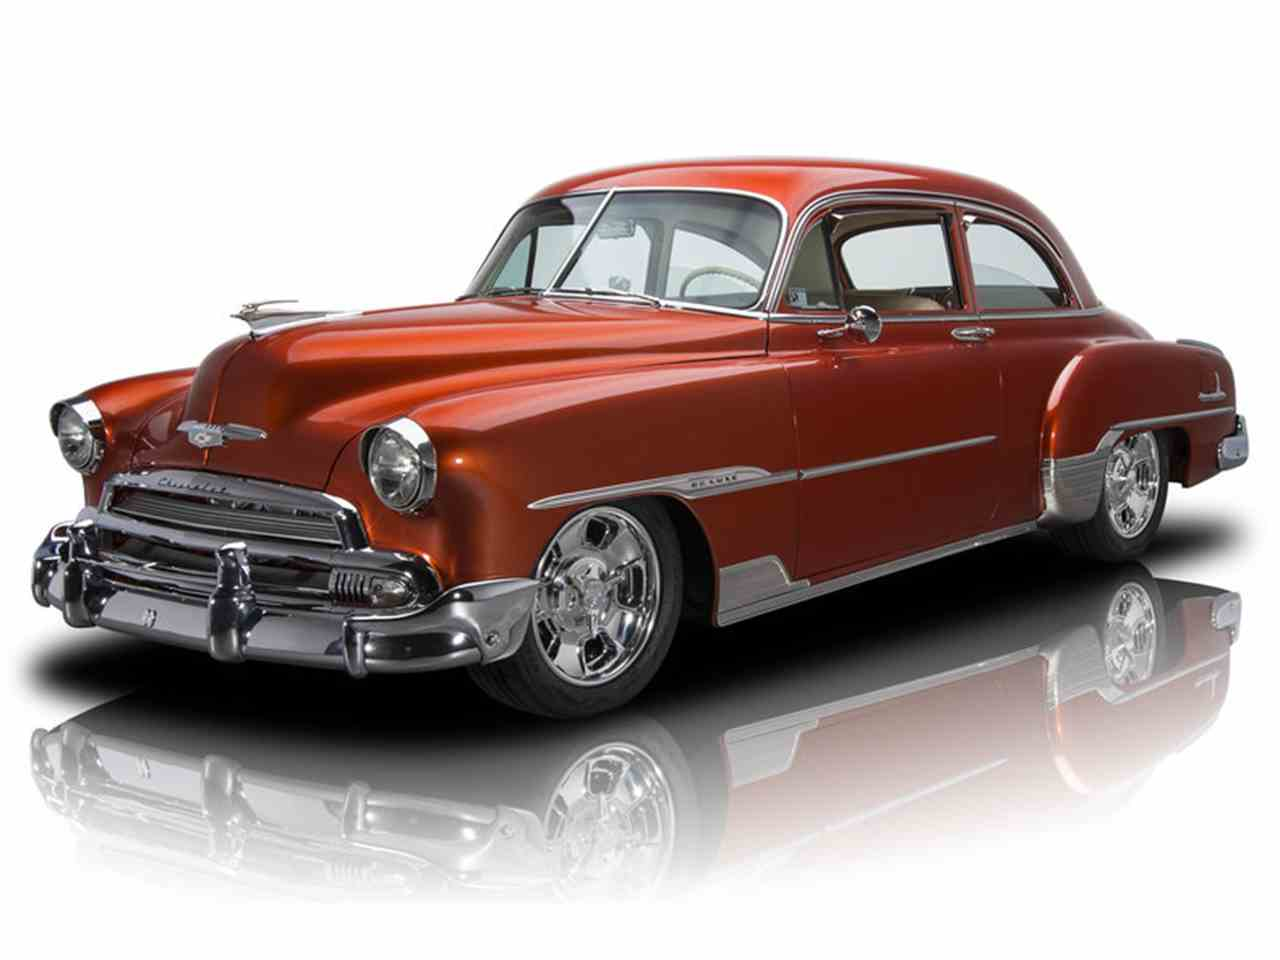 1951 Chevrolet Styleline for Sale - CC-1045557